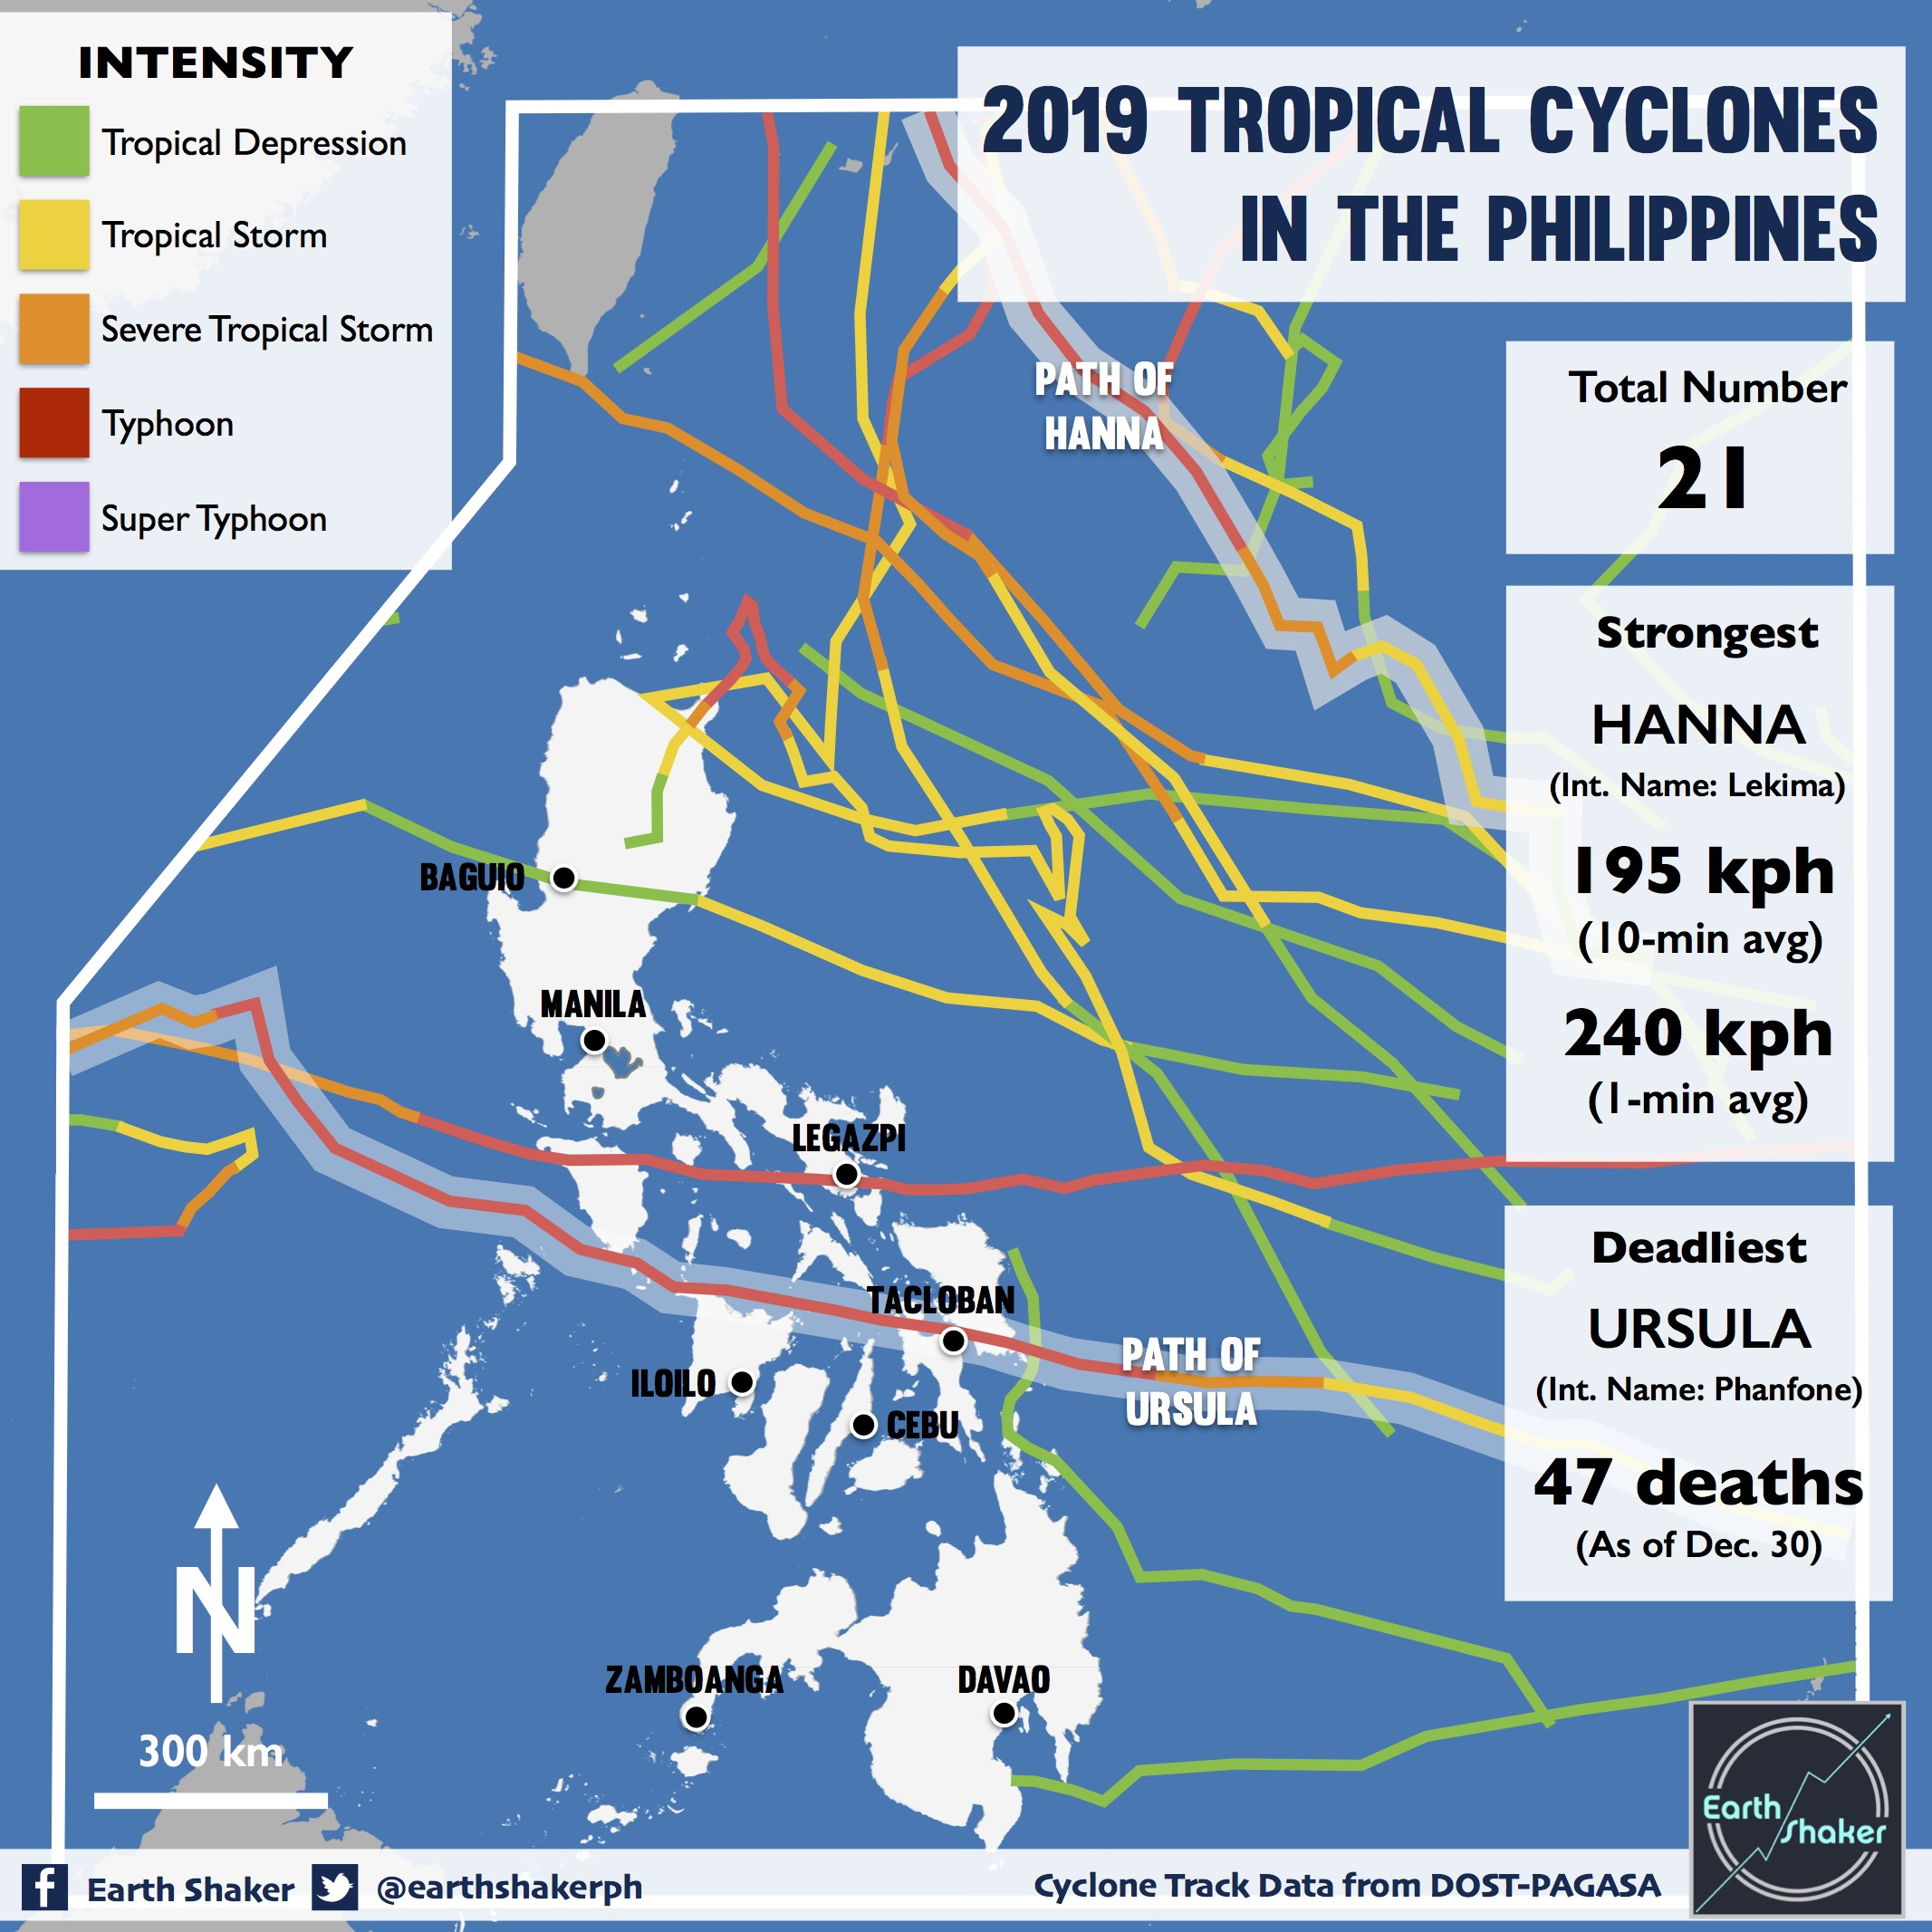 photo:Earth Shaker;desc:Cyclone Track Data from DOST-PAGASA